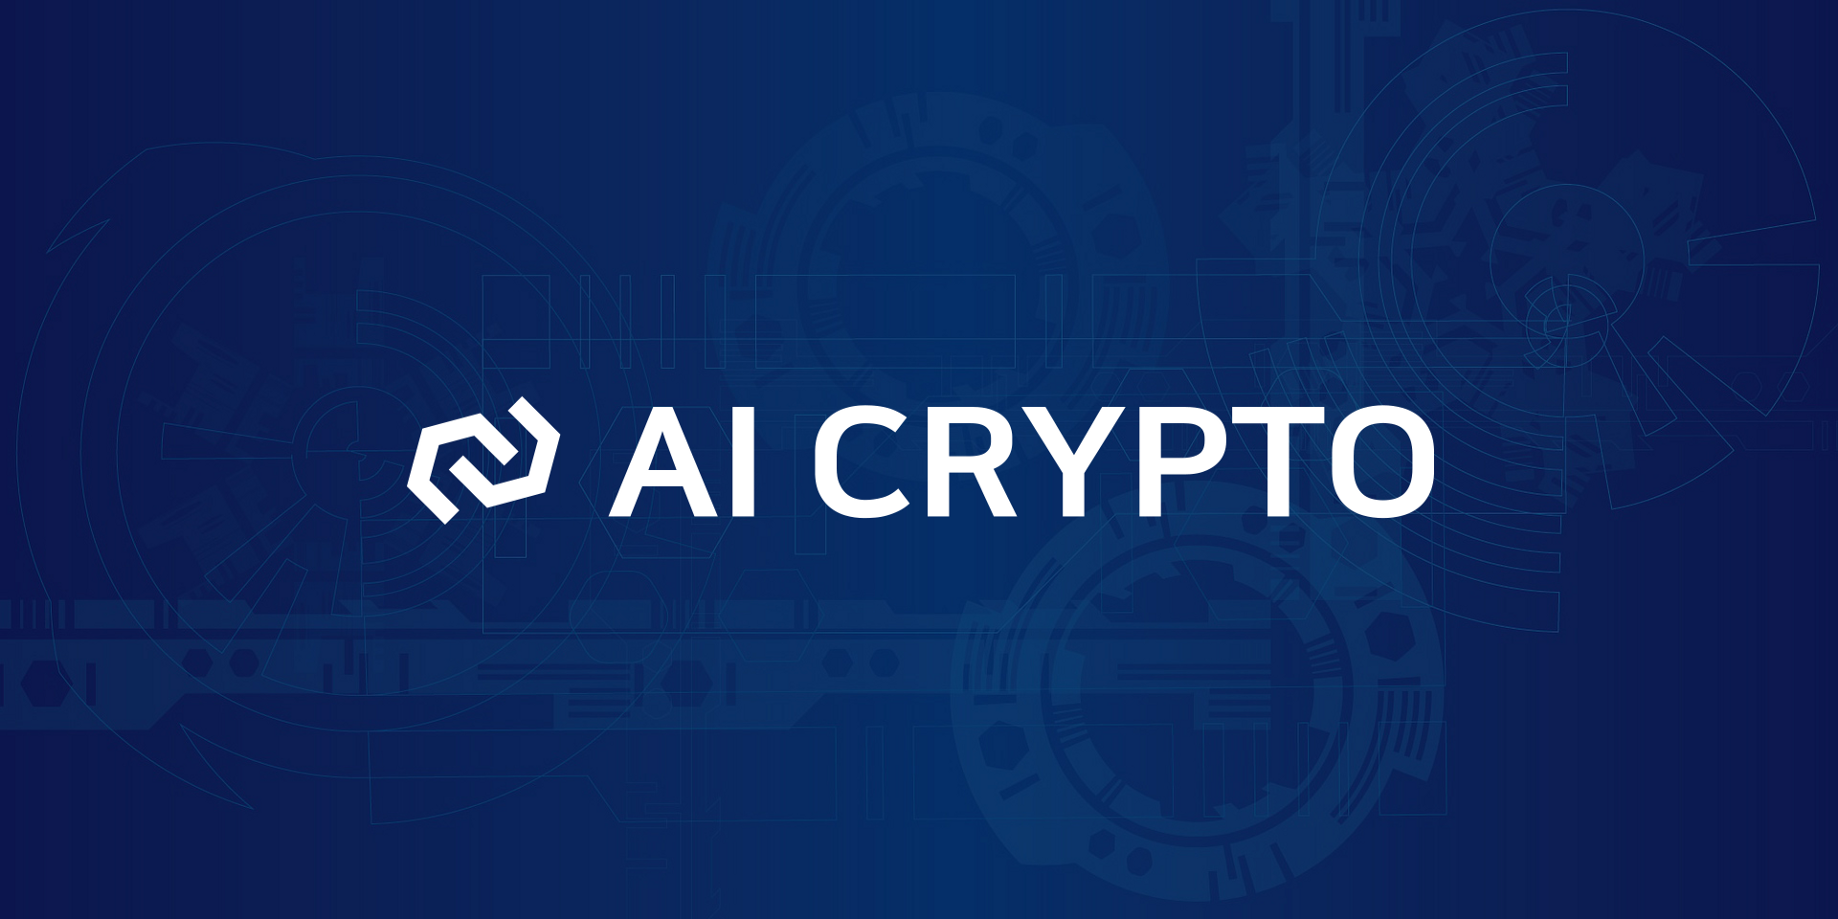 AI Crypto Launches Chinese and Russian Telegram Groups!